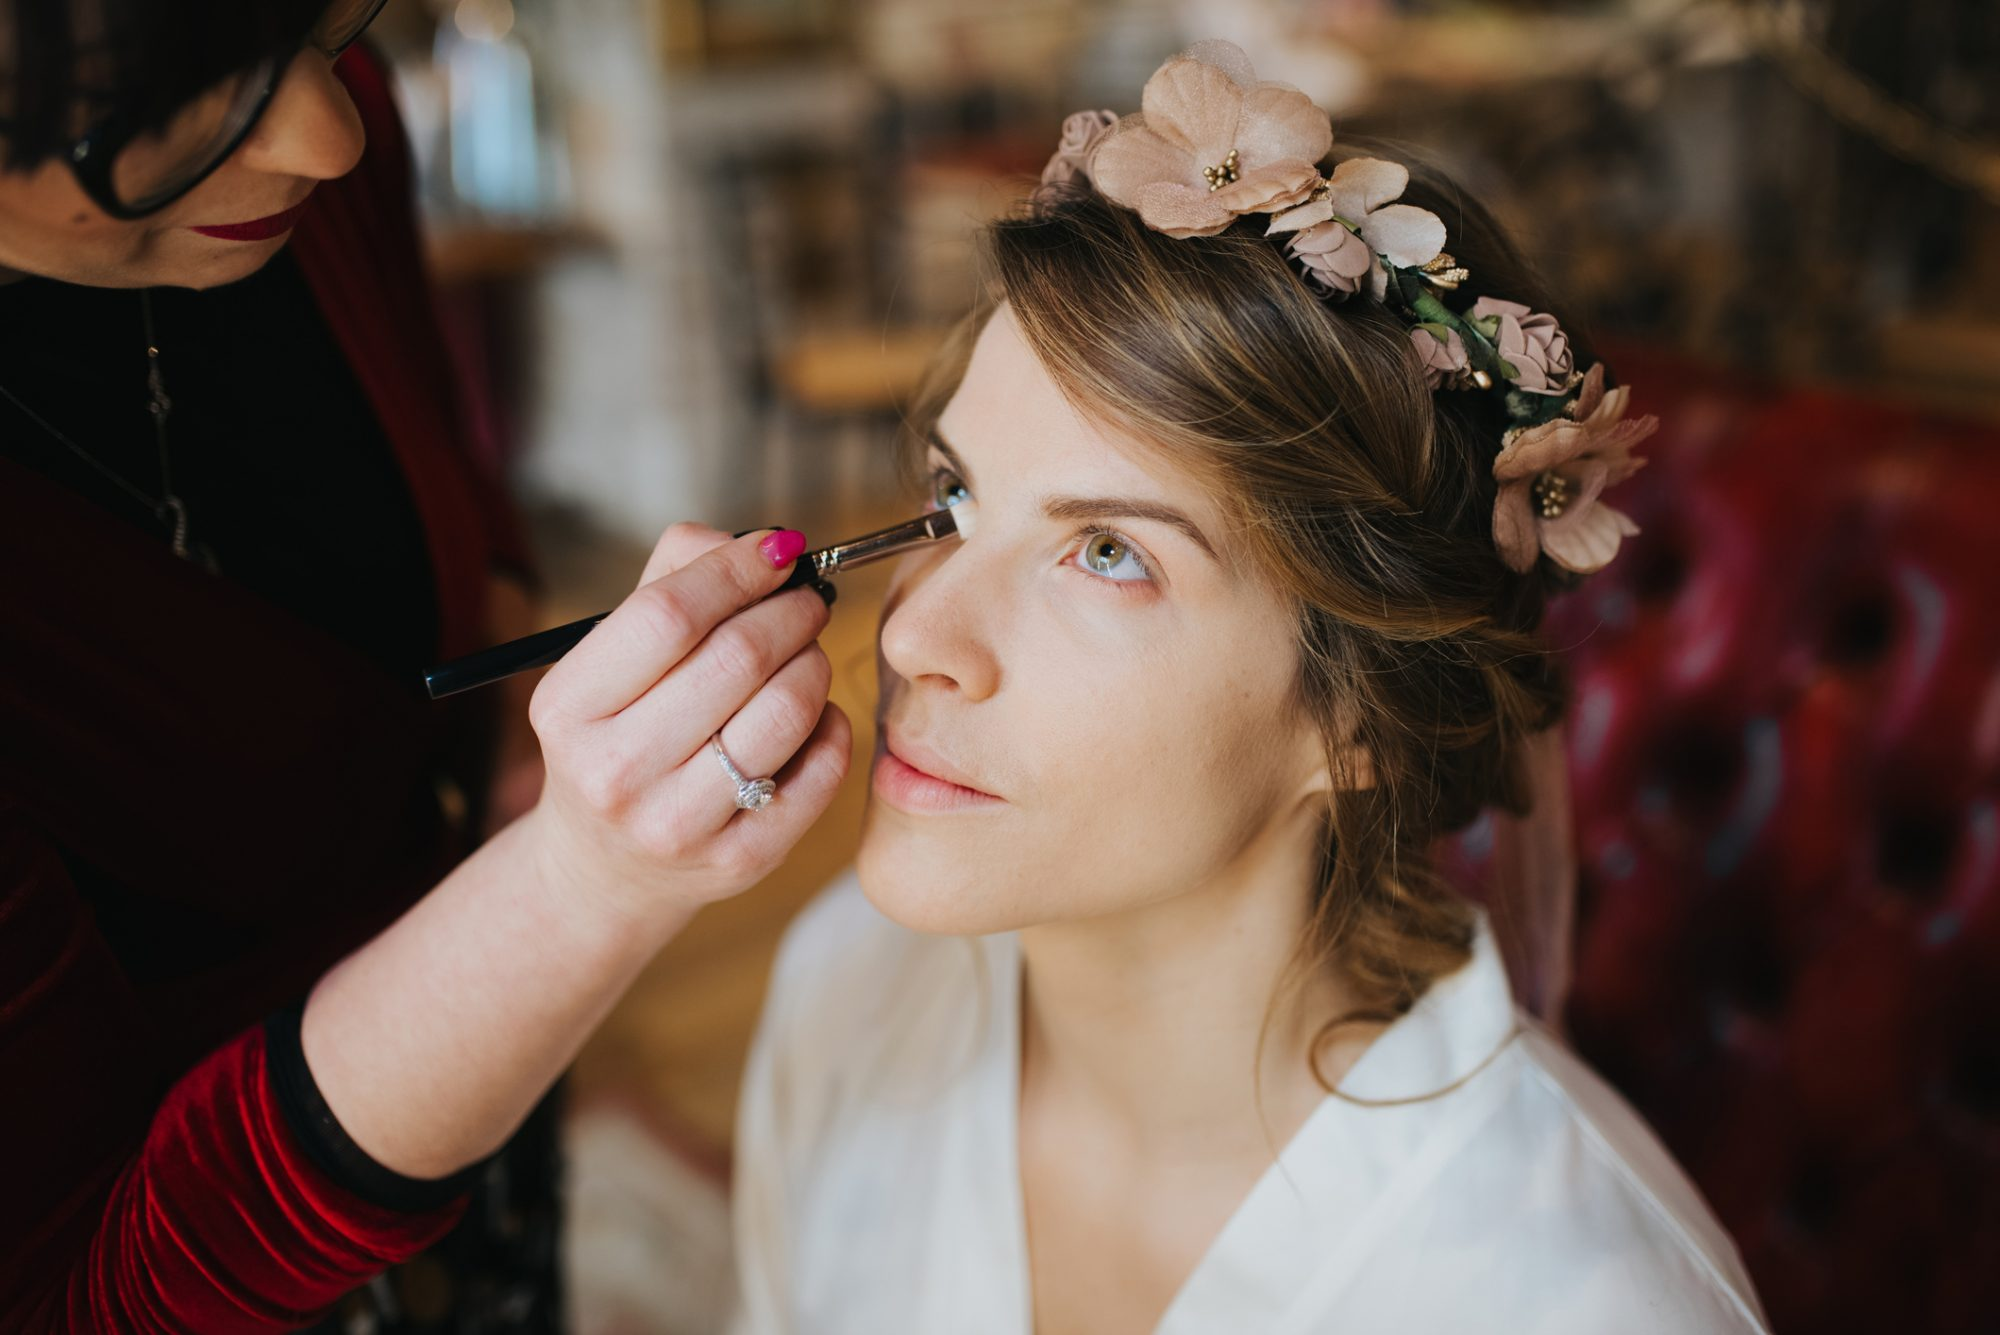 The One Makeup Mistake to Avoid Your Wedding Day